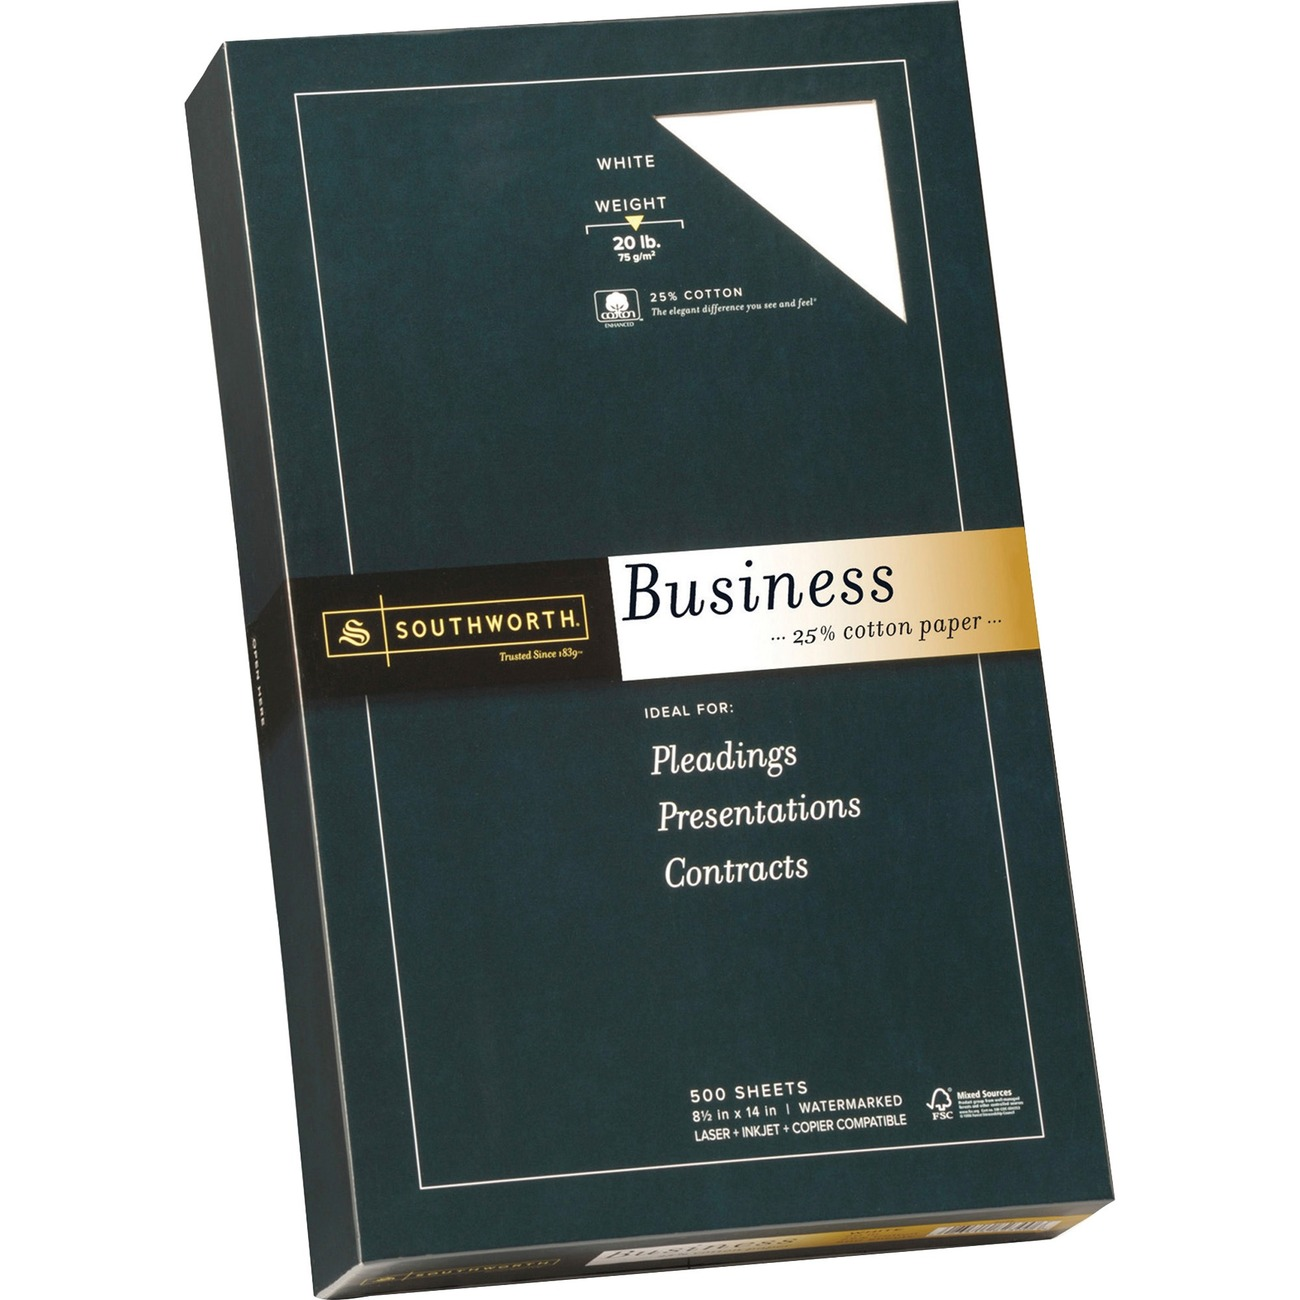 southworth business paper All prices listed are delivered prices from costco business center product availability and pricing are subject to change without notice price changes, if any, will be reflected on your order confirmation.